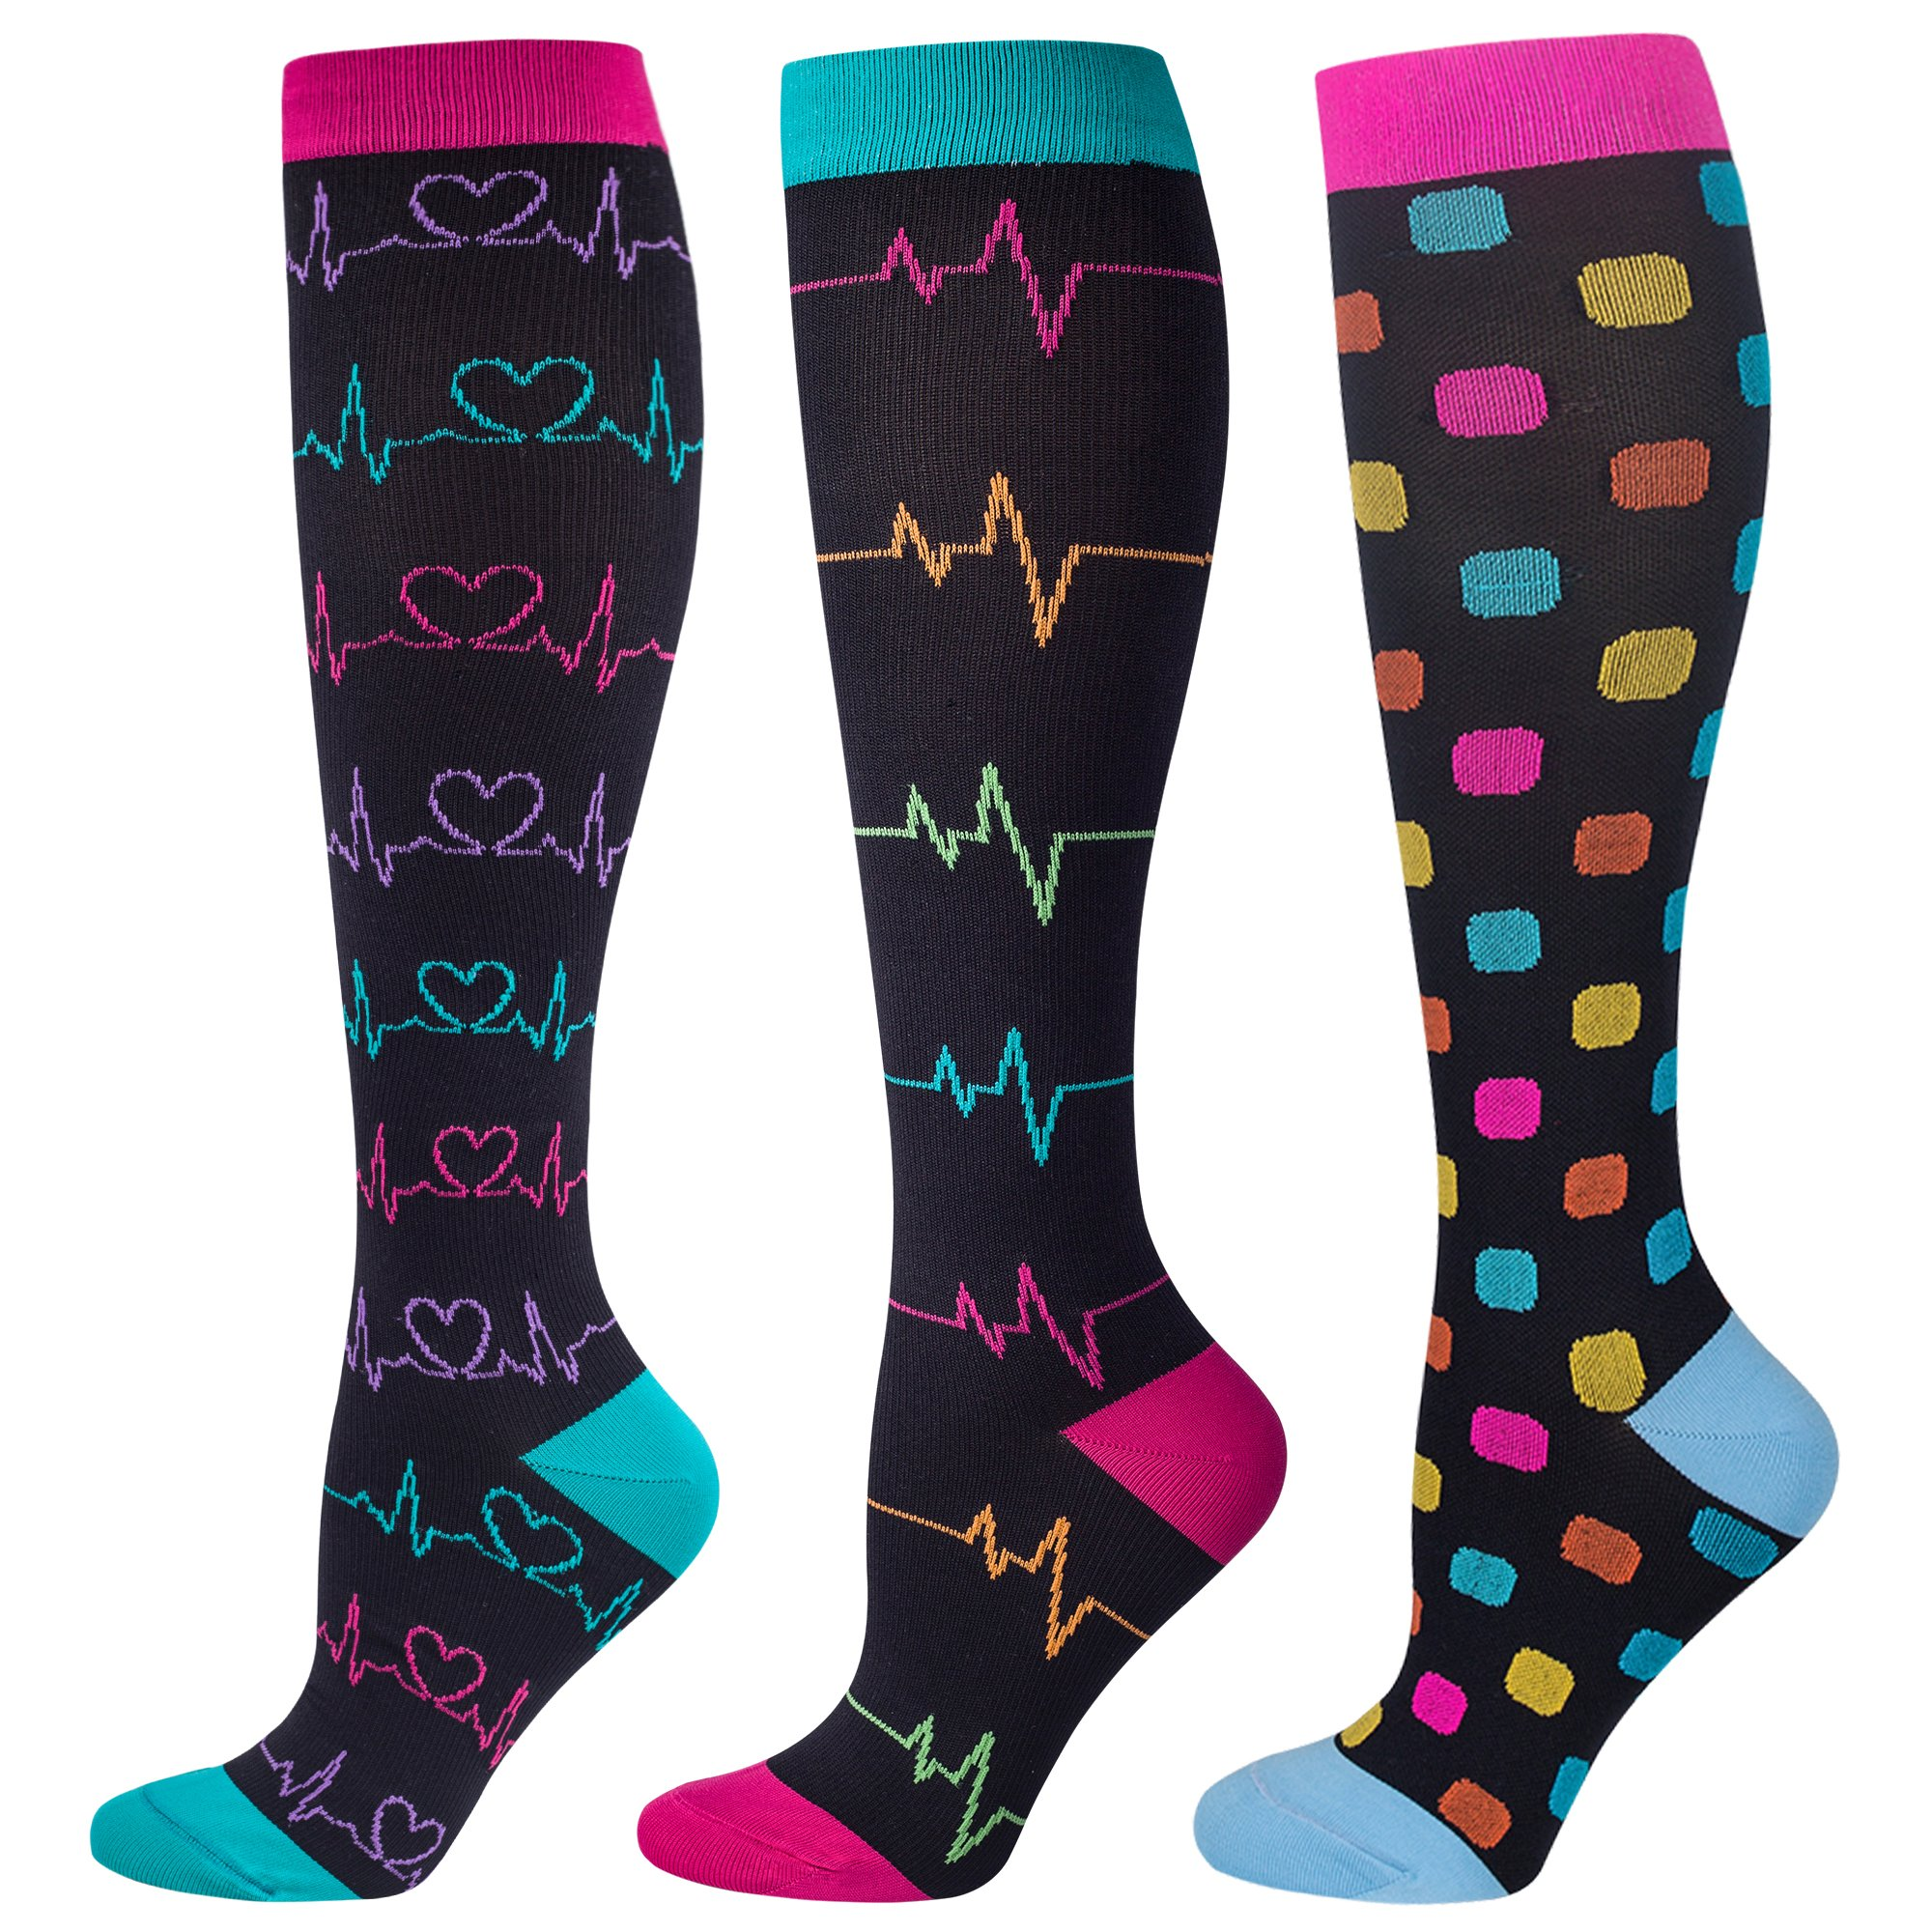 3 Pairs Compression Socks for Nurse(Women)|20-30mmHg Graduated Knee High Stocking |Anti Fatigue & Prevent Swelling in 12h Shift by LEVSOX (Image #2)